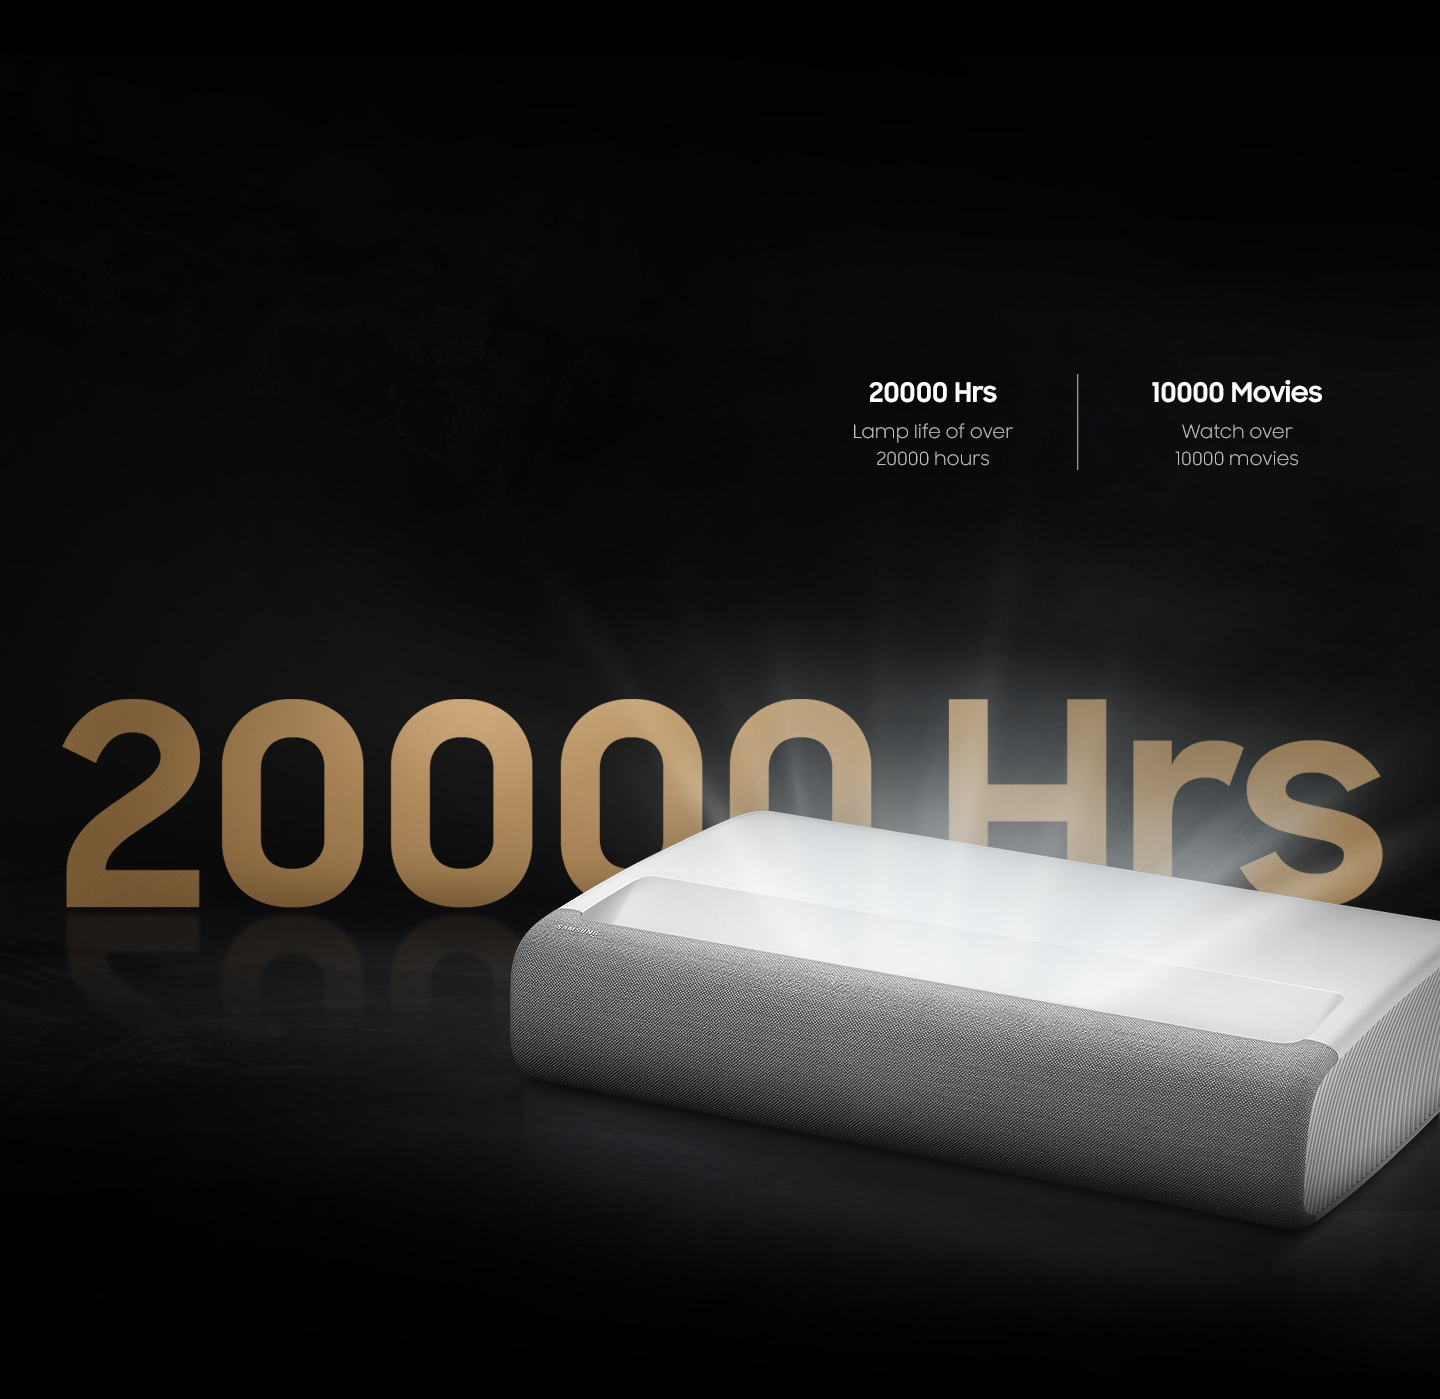 Home cinema projector The Premiere has a lifespan of over 20,000 hours that you can enjoy watching over 10,000 movies.